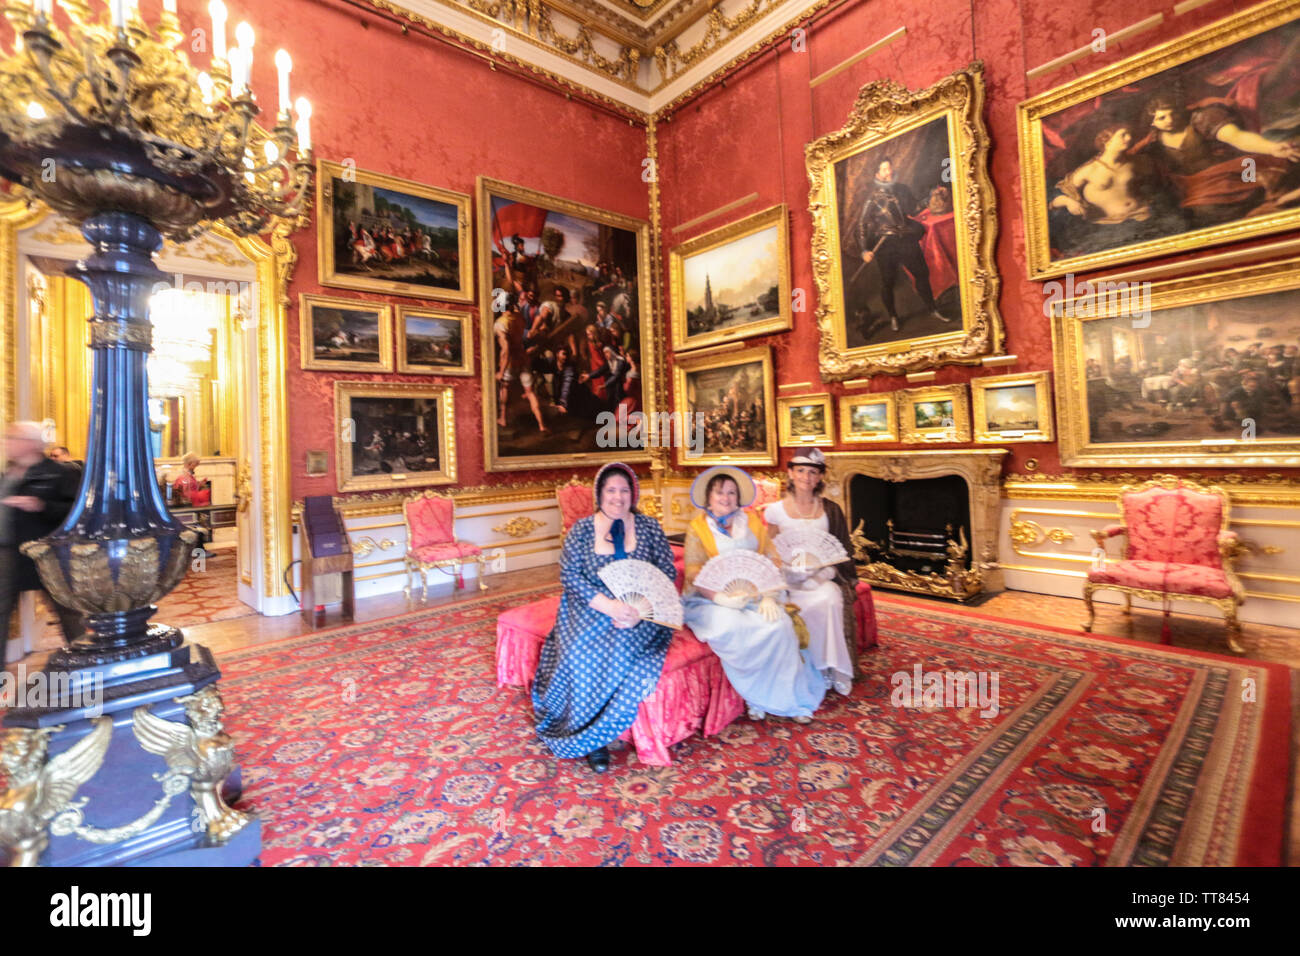 London, UK. 15 June 2019. Three Actresses in period costum in The Waterloo Gallery is the final element of Benjamin Dean Wyatt's work on Apsley House completed in 1830. The style is French revival and has been described as after Louis XIV, Louis XV or Louis XVI. In reality it is an eclectic mix which was a hallmark of Wyatt's work. The gallery is double height; there is no second floor or attic in this part of the house. When Wyatt's designs for York (now Lancaster) House were delayed in 1826 they were re-worked for Apsley House.Paul Quezada-Neiman/Alamy Live News Credit: Paul Quezada-Neiman/A - Stock Image